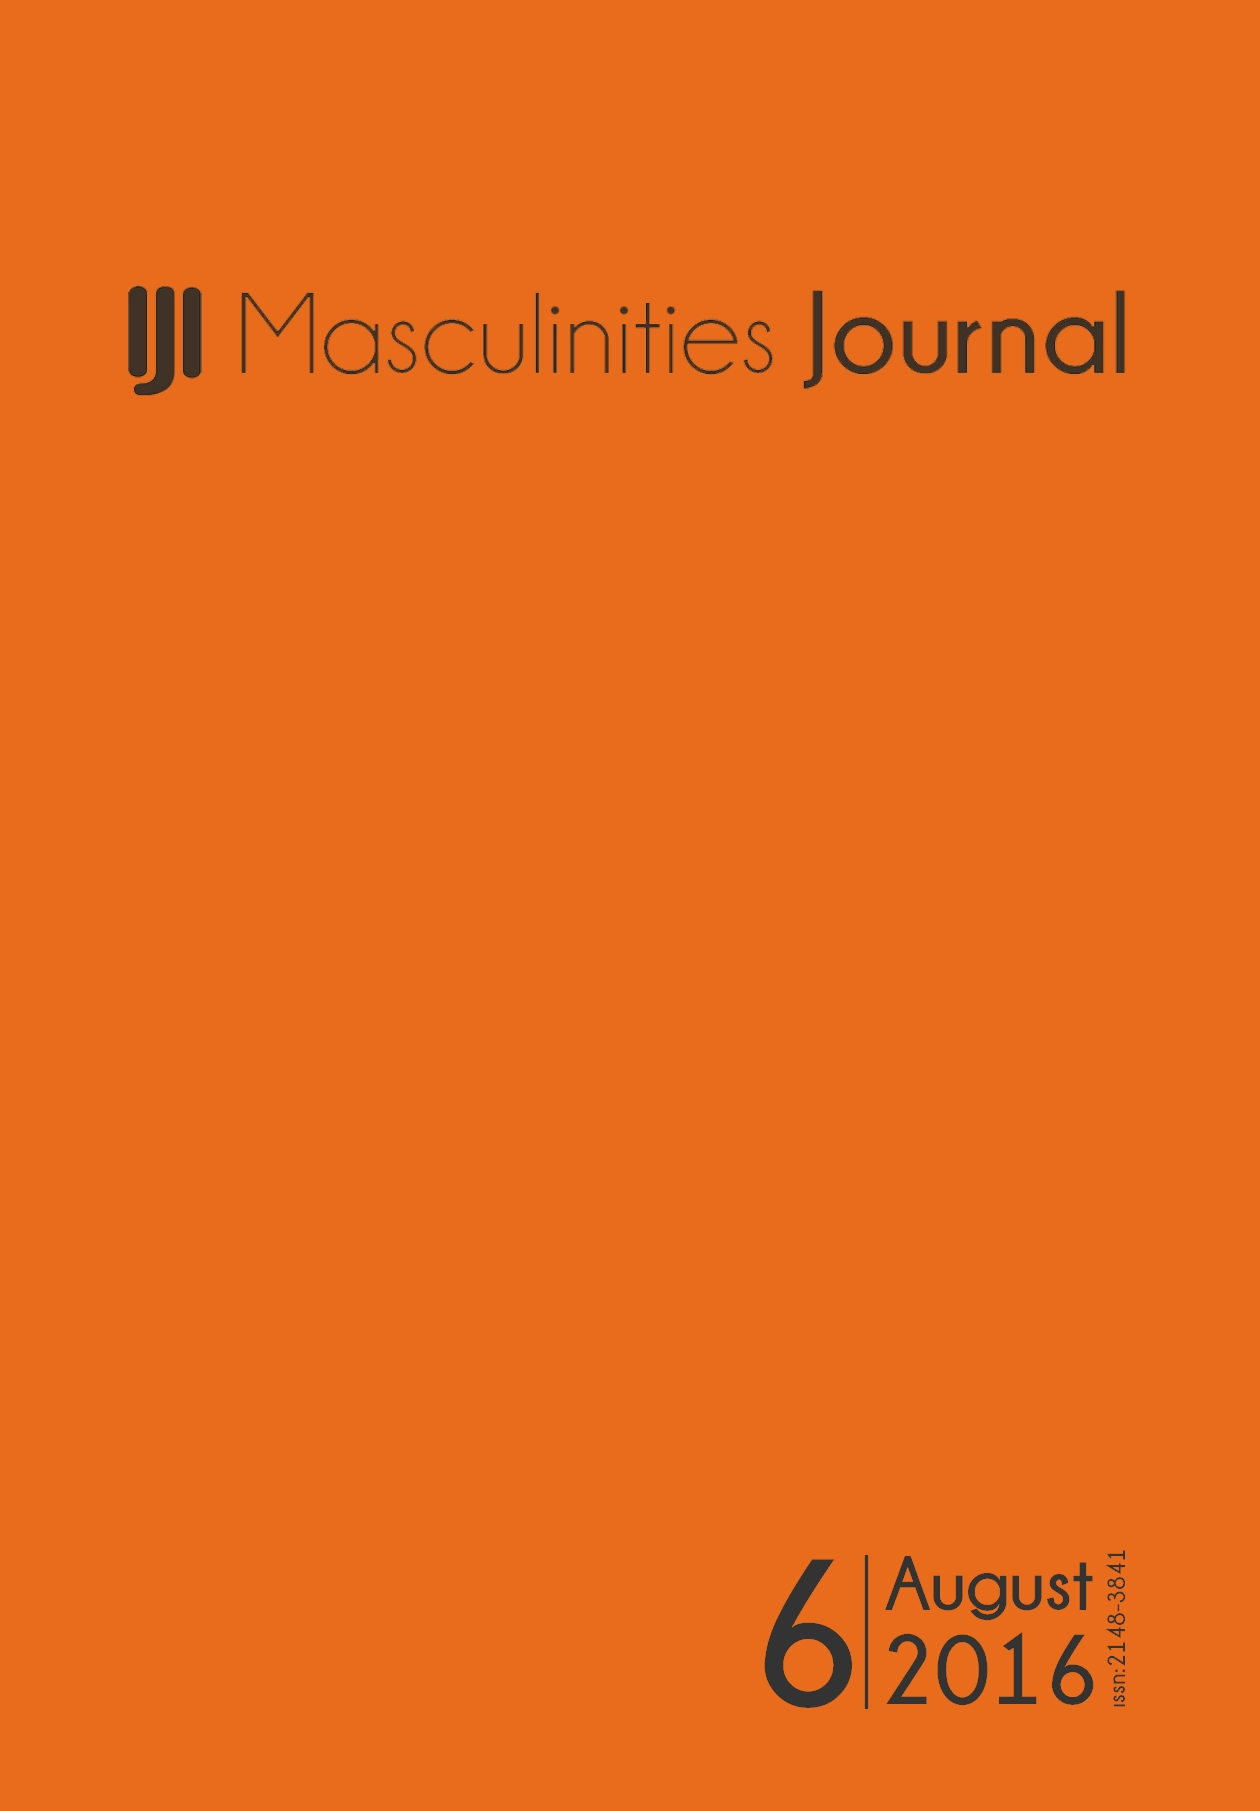 6th Issue of Masculinities: A Journal of Identity and Culture is online now